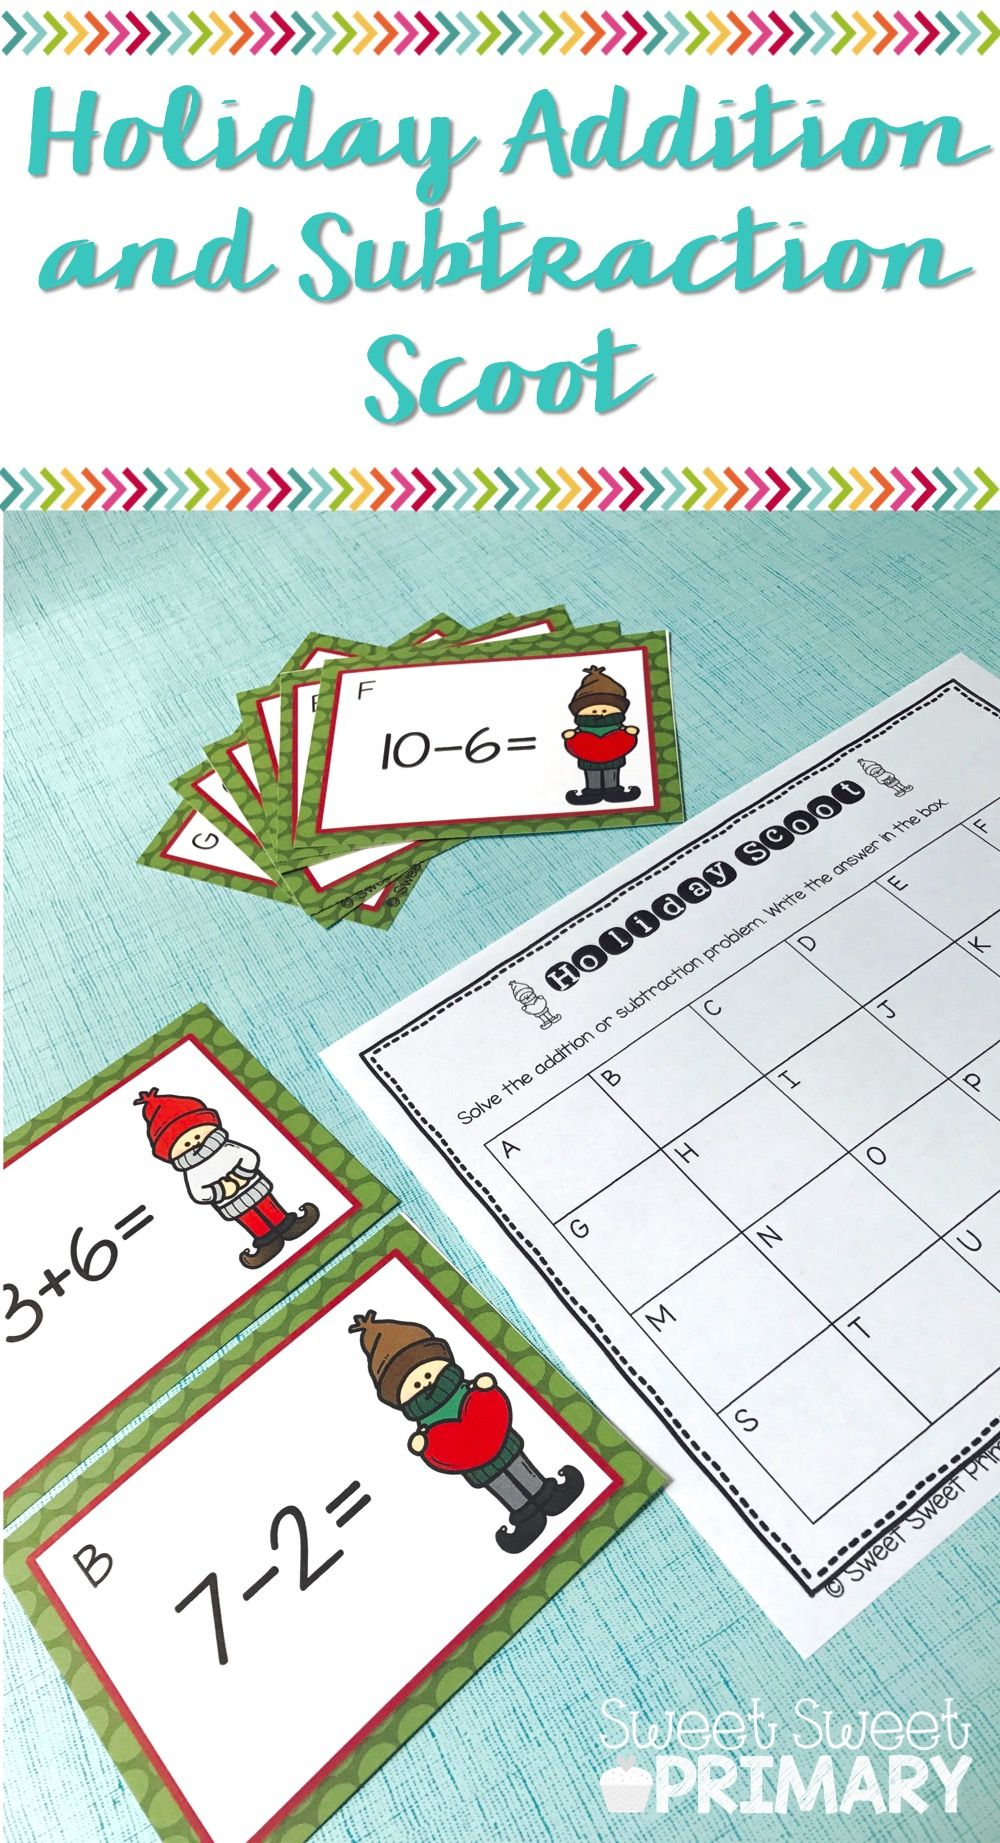 Holiday Addition and Subtraction Scoot   Kindergarten, Recording ...